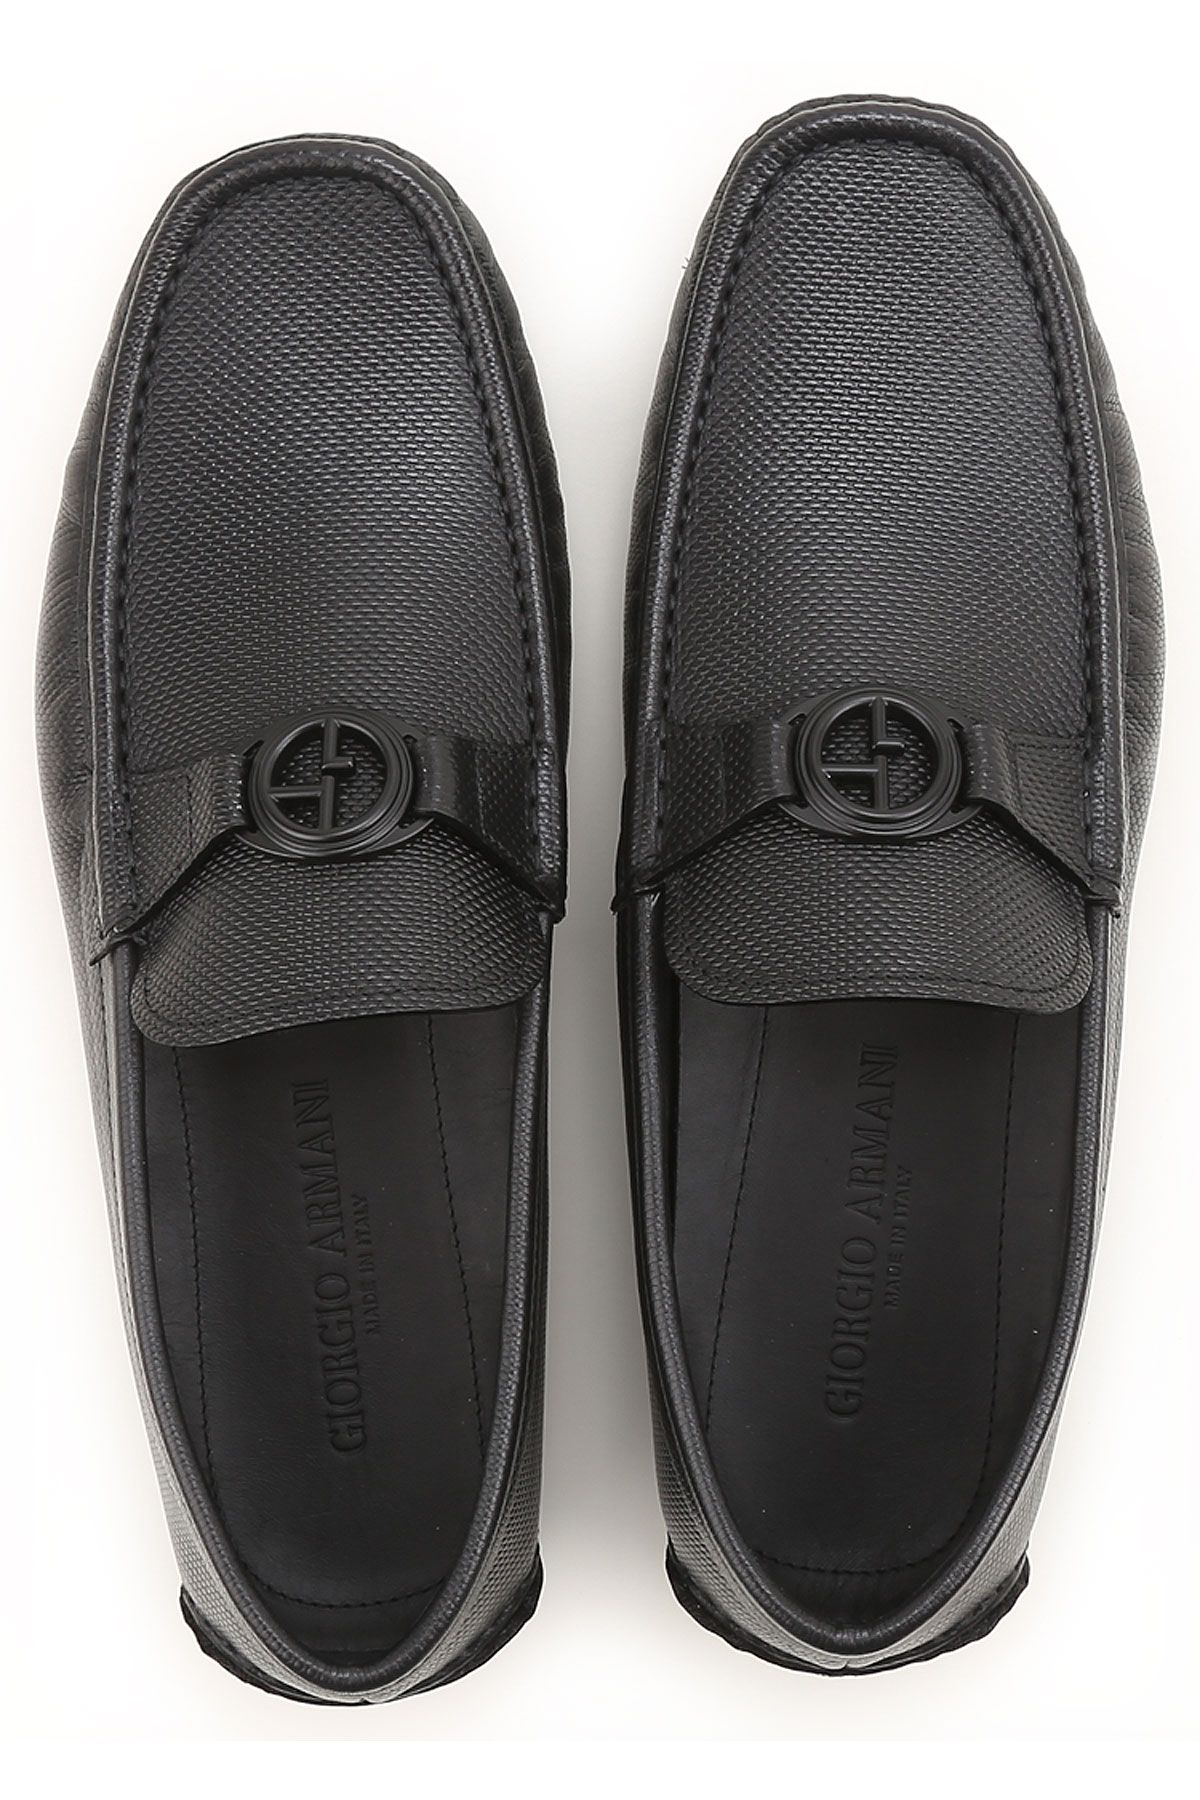 2f81f2723f1 EMPORIO ARMANI Chaussures Homme